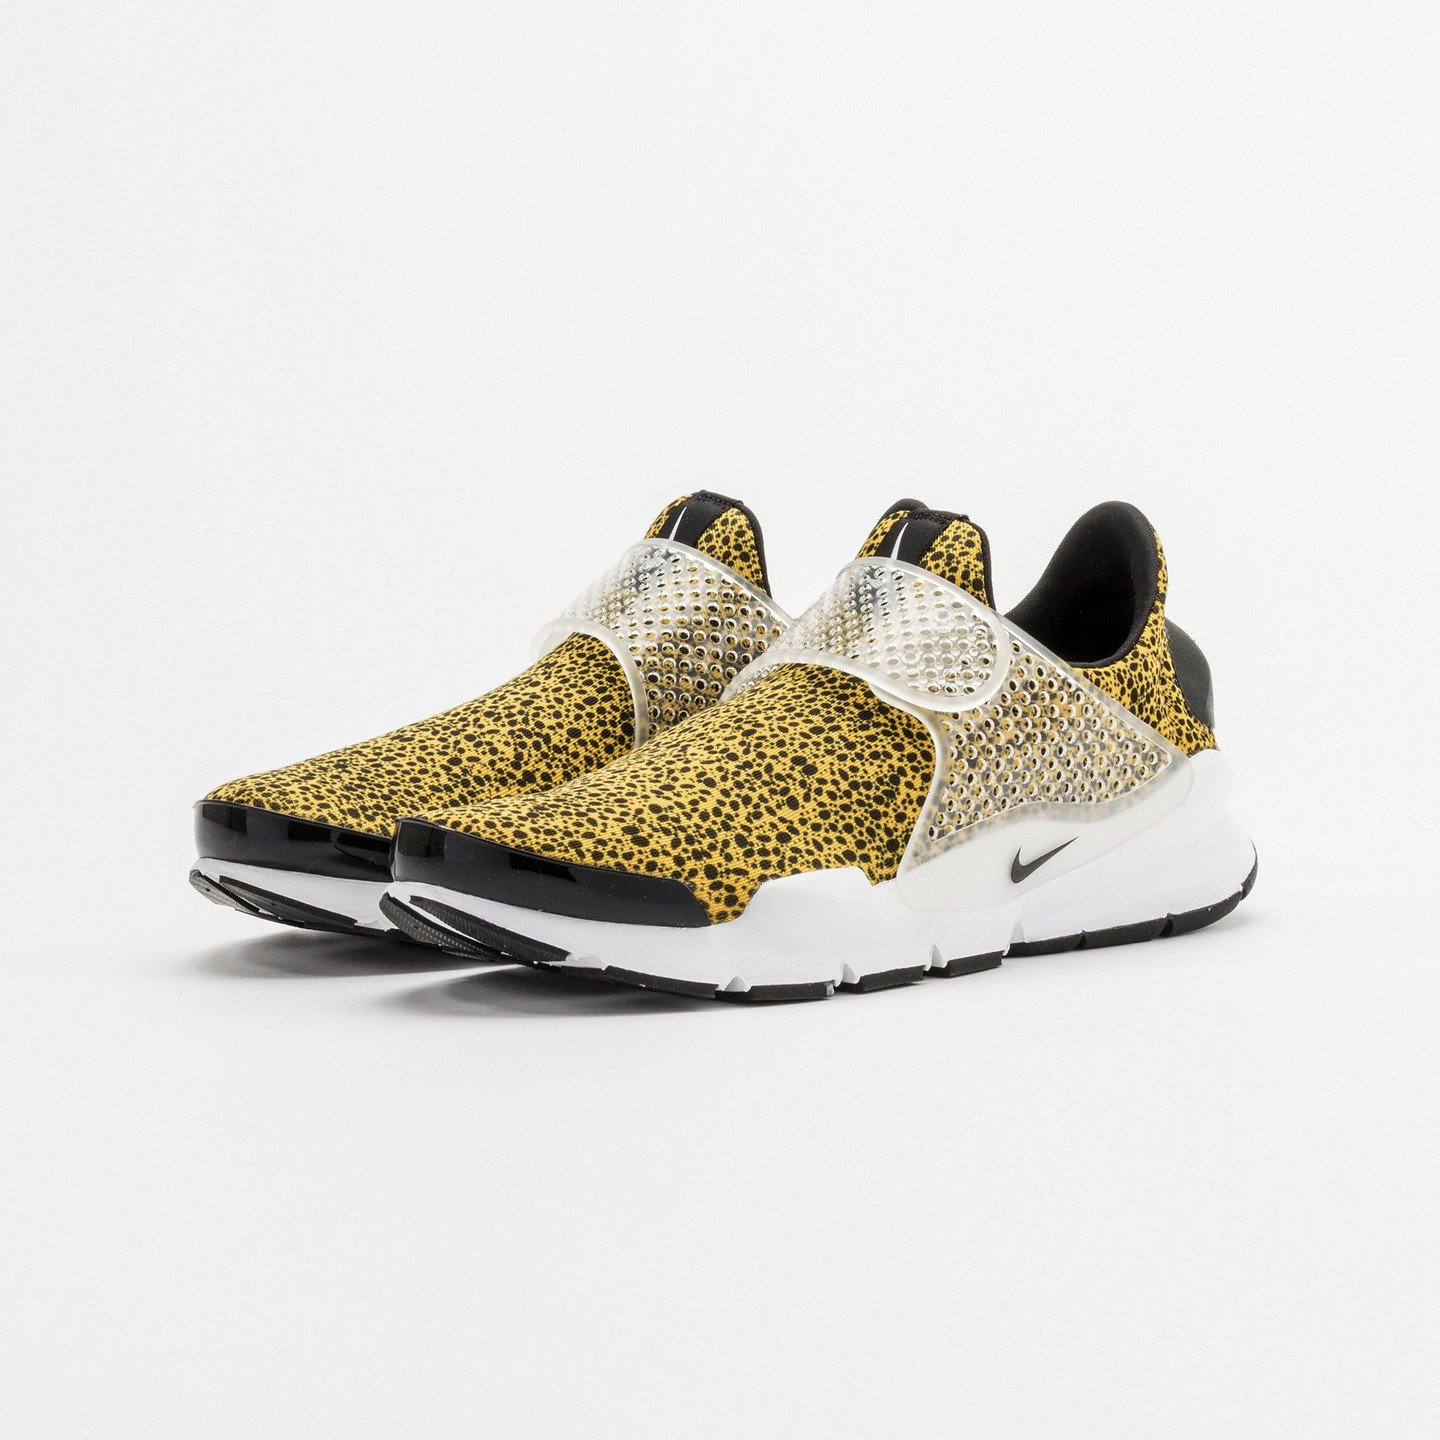 Nike Sock Dart QS 'Safari Pack' University Gold / Black / White 942198-700